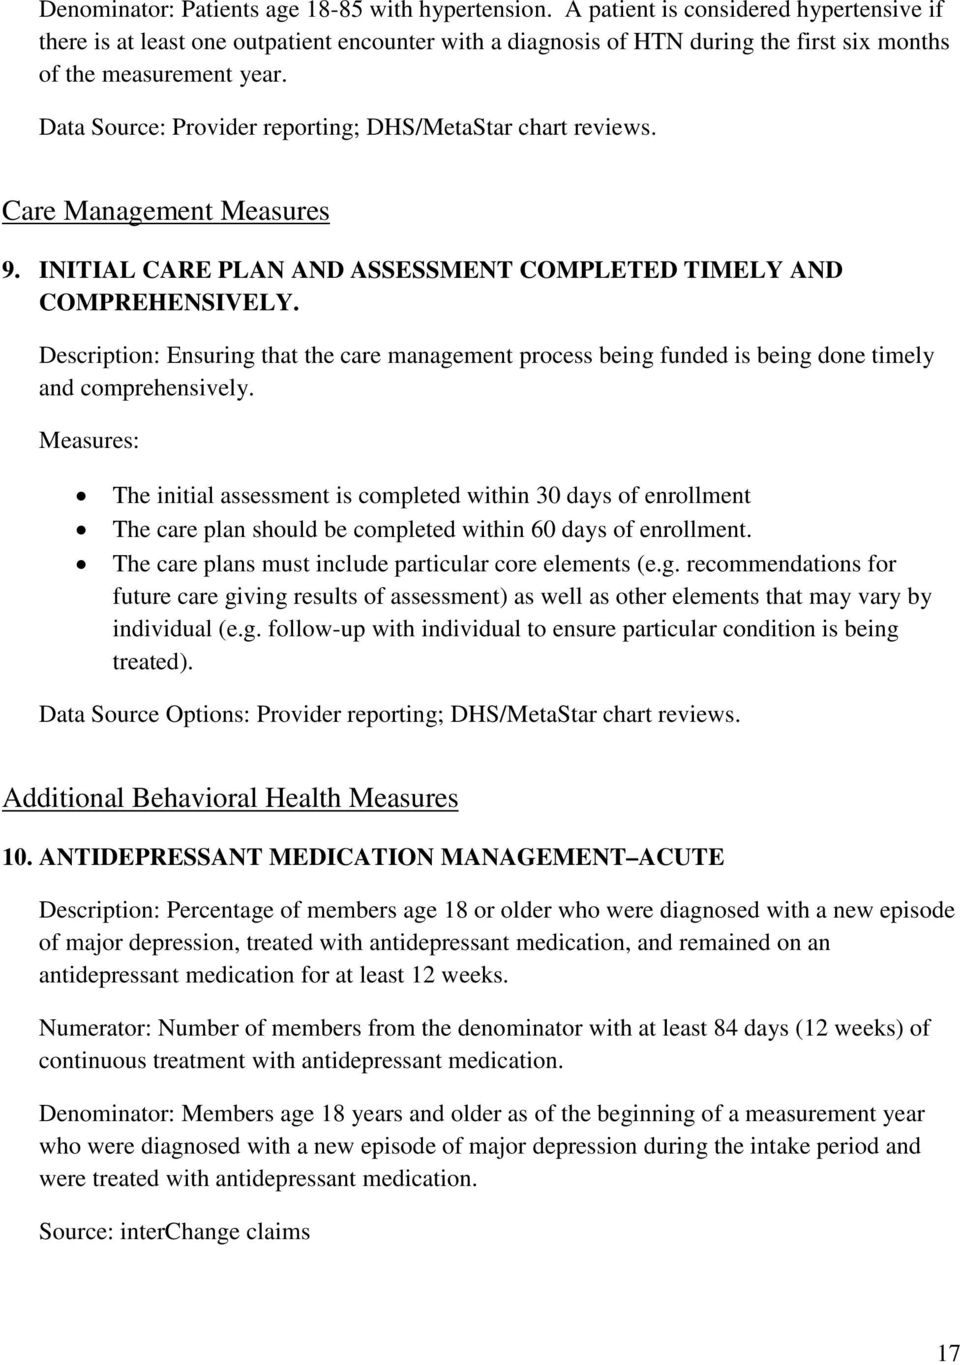 Data Source: Provider reporting; DHS/MetaStar chart reviews. Care Management Measures 9. INITIAL CARE PLAN AND ASSESSMENT COMPLETED TIMELY AND COMPREHENSIVELY.